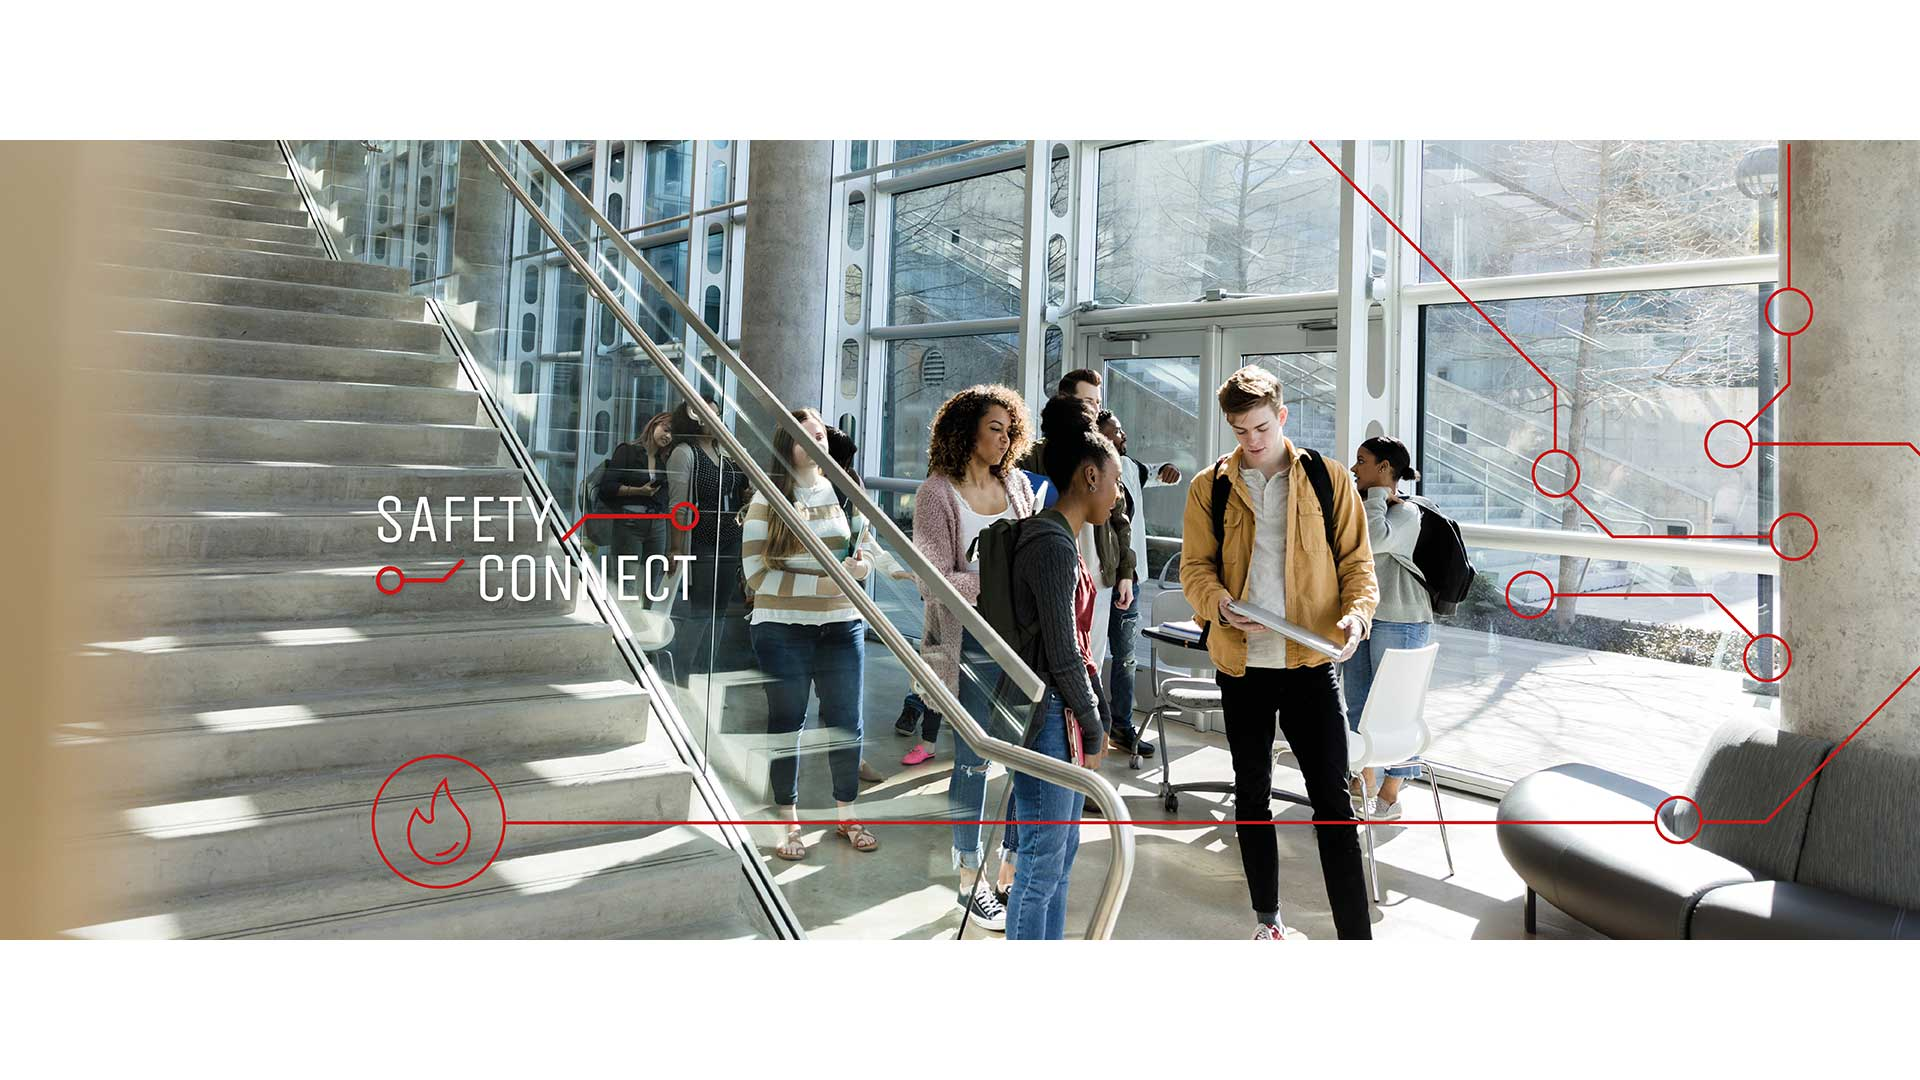 Safety Connect 6